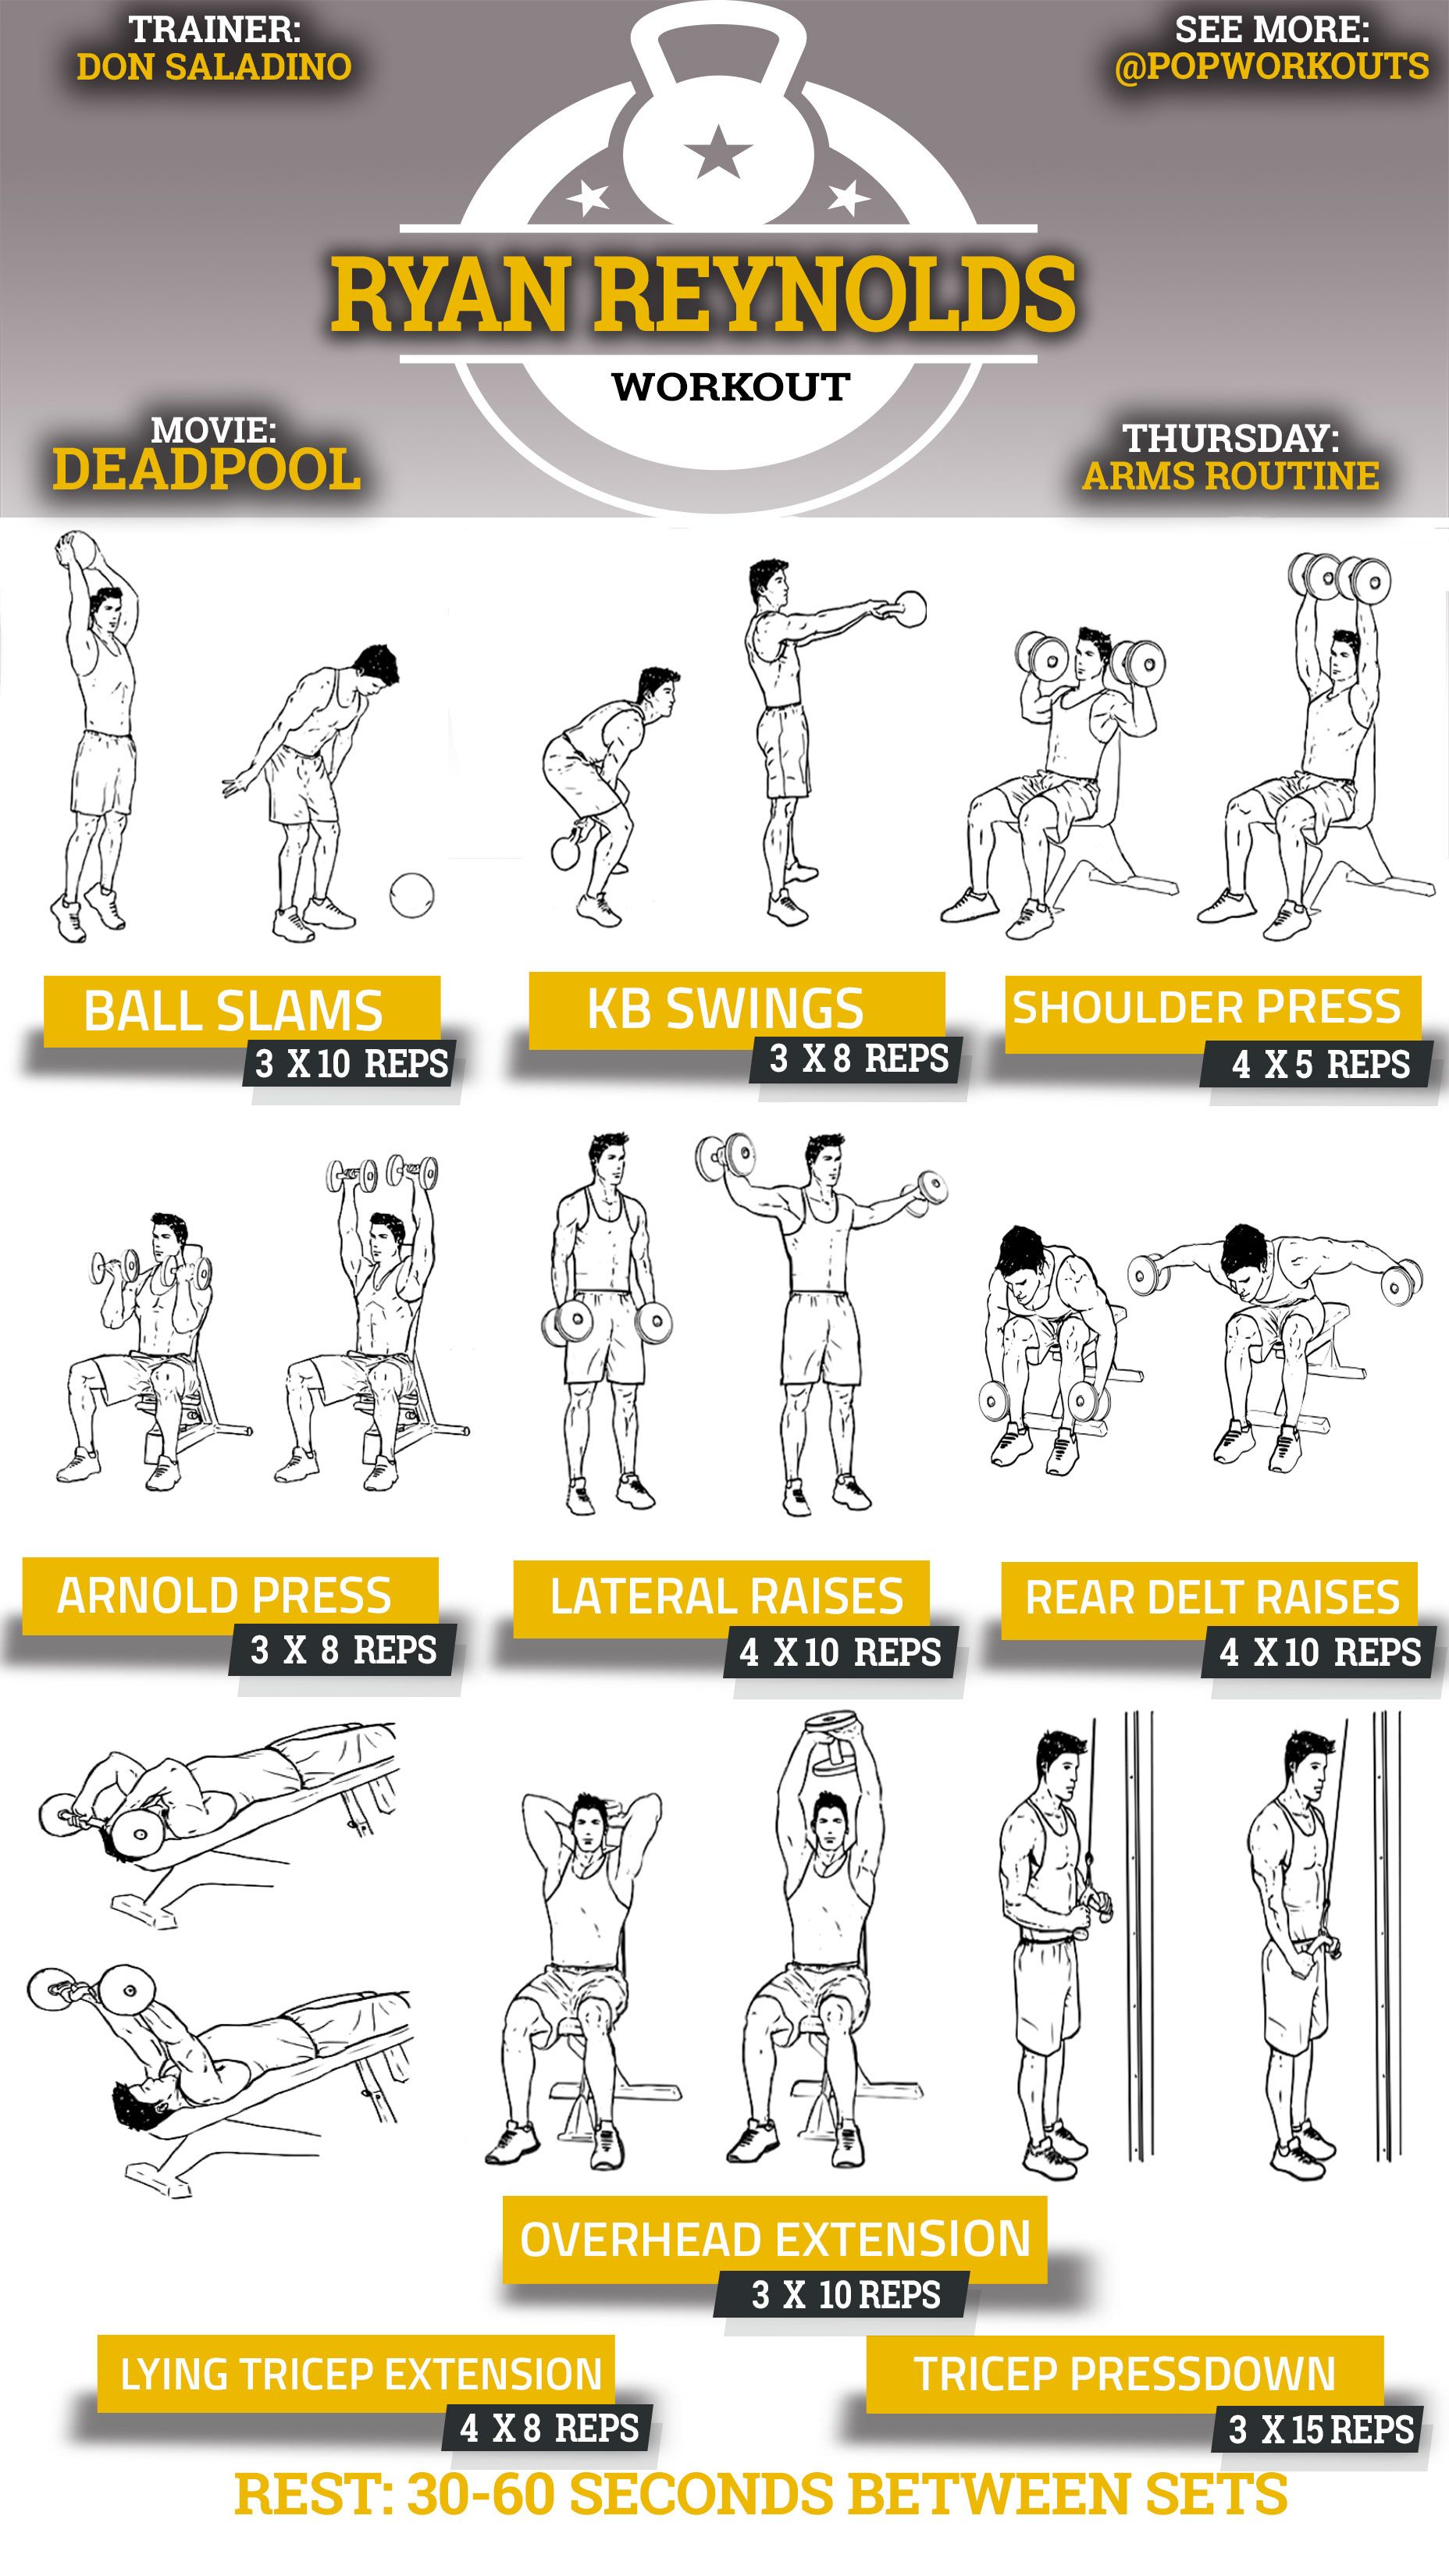 How to get ripped workout routine that can